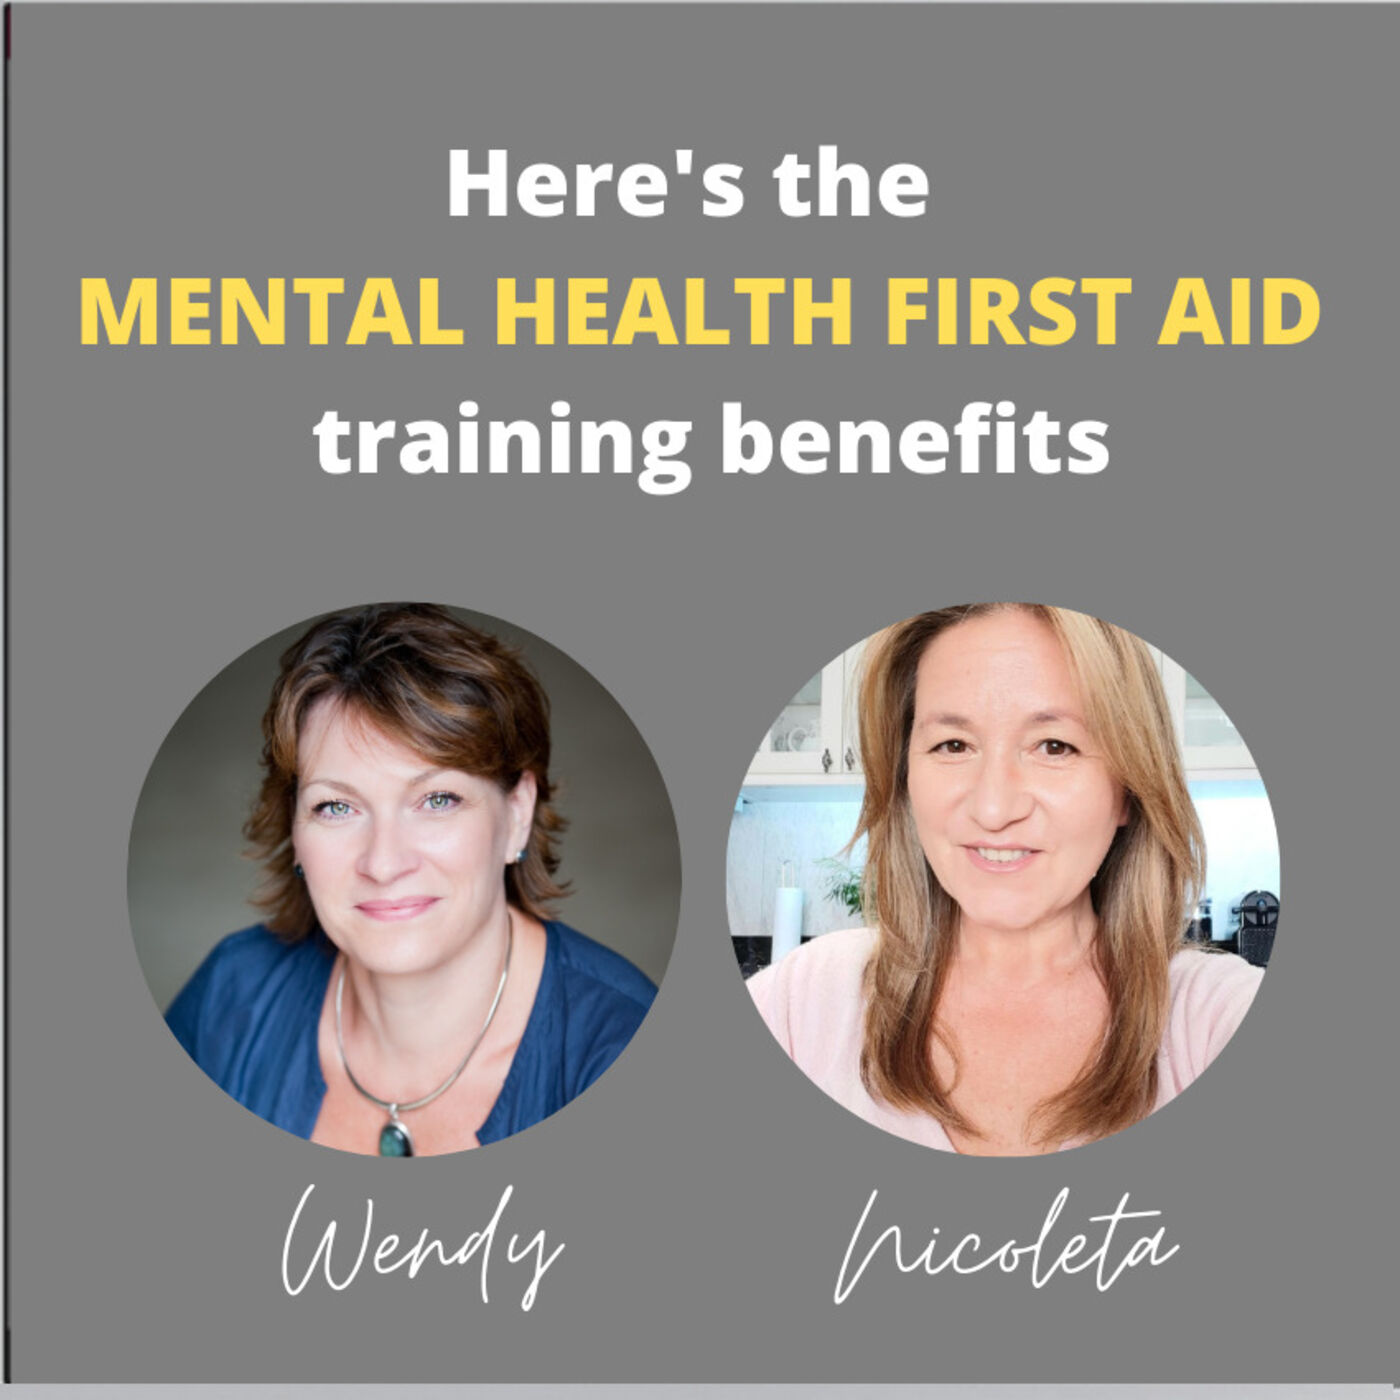 11 - Here's the Mental Health First Aid training benefits